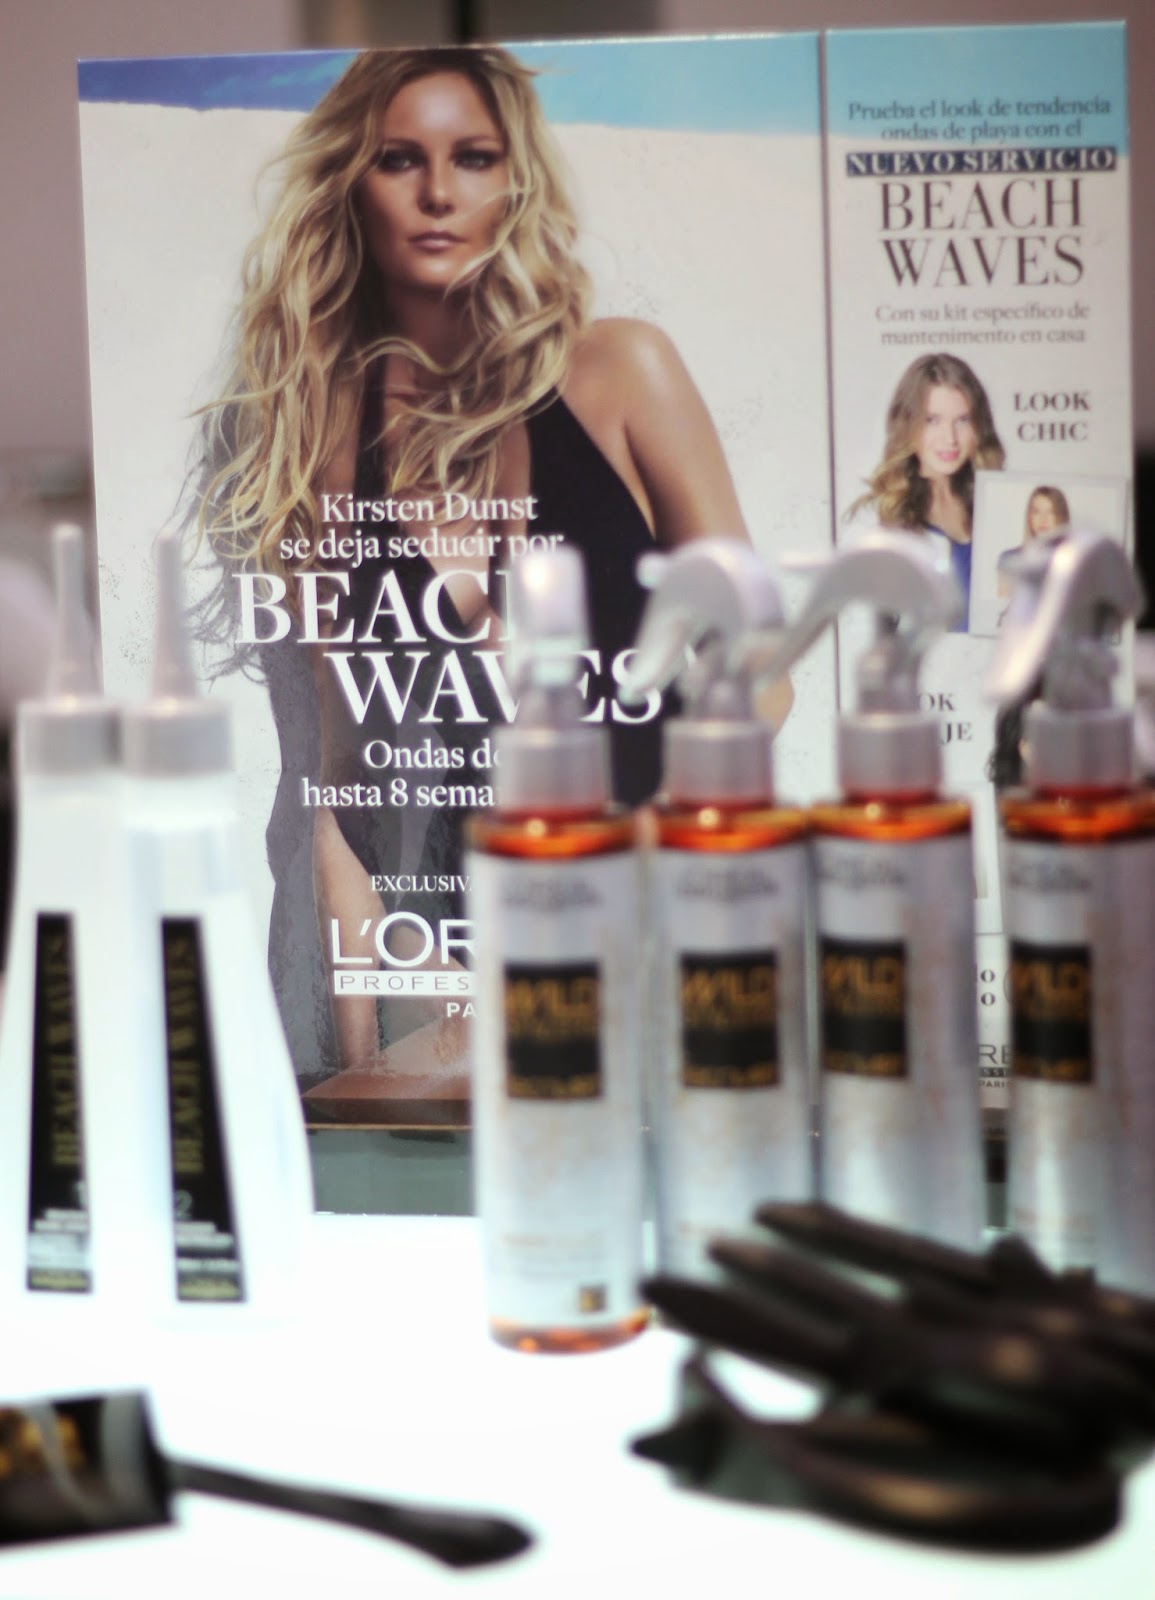 photo-beach_waves-l'oreal_professionel-alberto_cerdan-Kirsten Dust